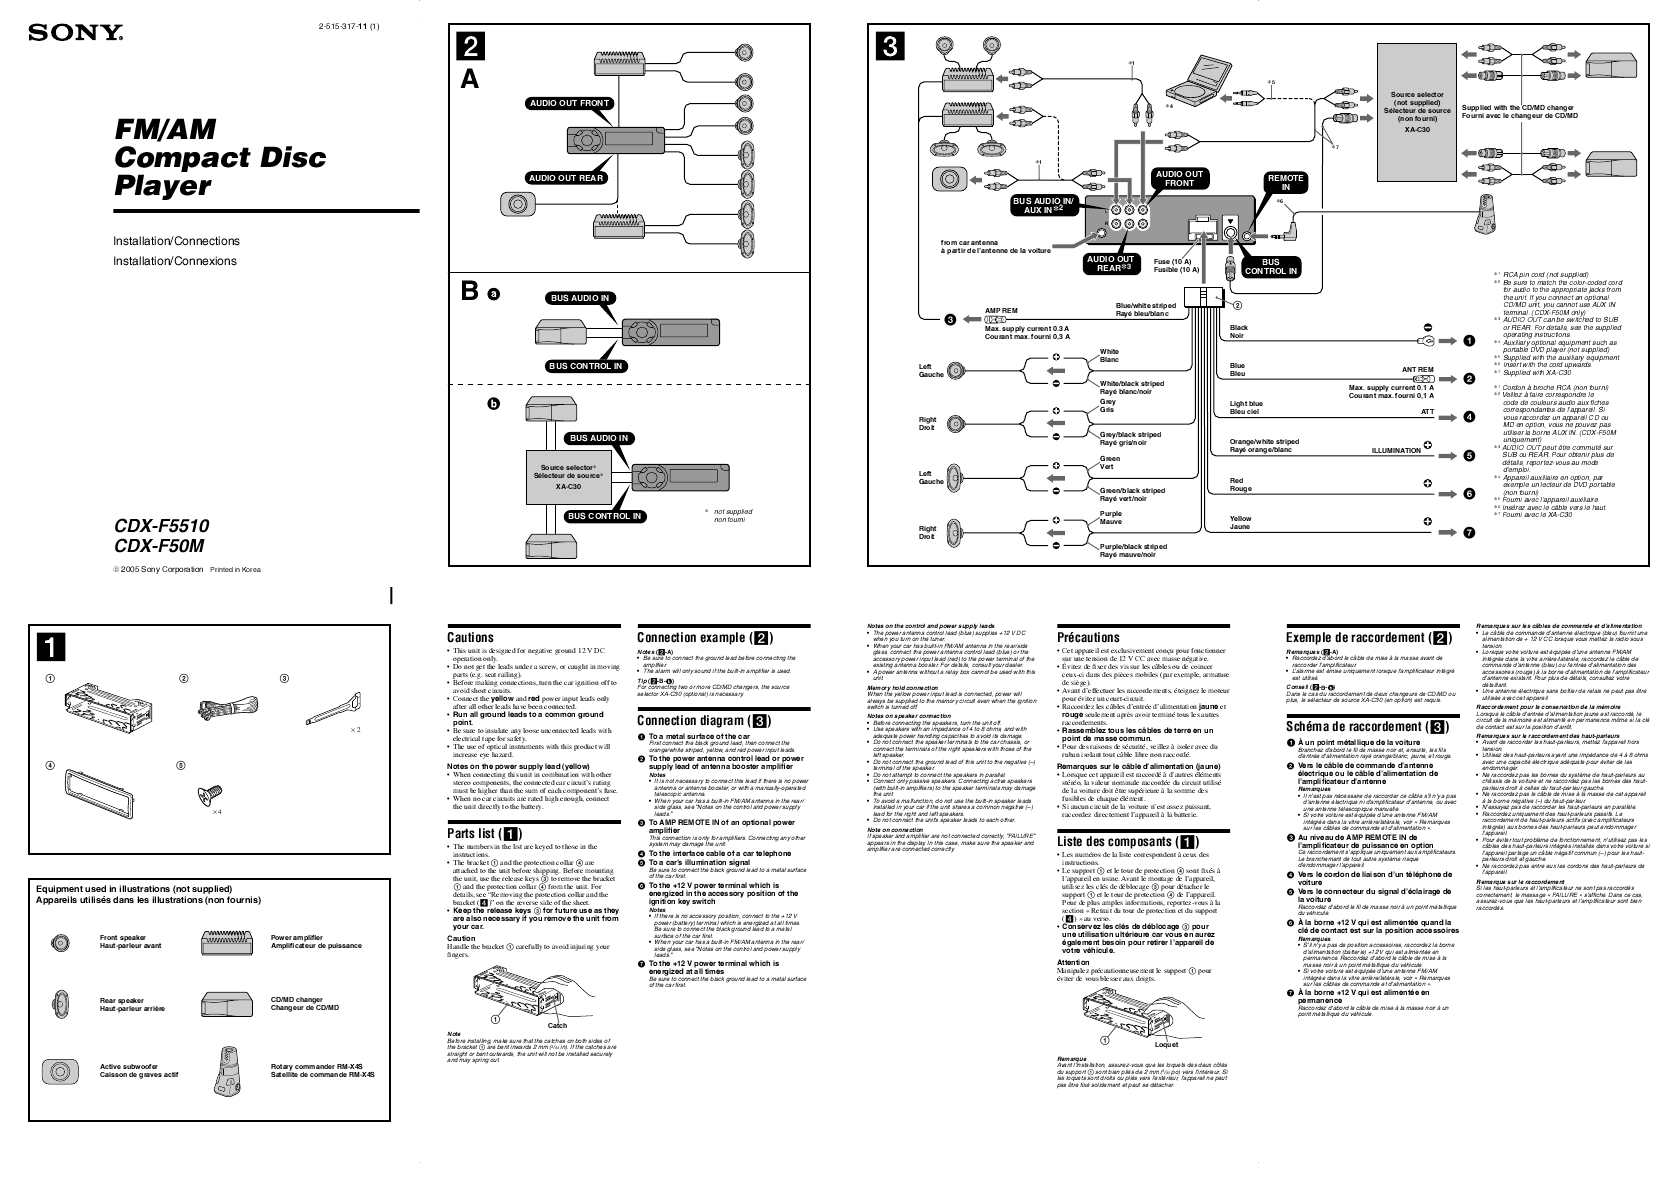 32d2453d 0ee5 f264 a1d6 965a42b33db0 000001?resize\=665%2C472 sony cdx gt300 wiring diagram sony stereo wire harness diagram  at eliteediting.co